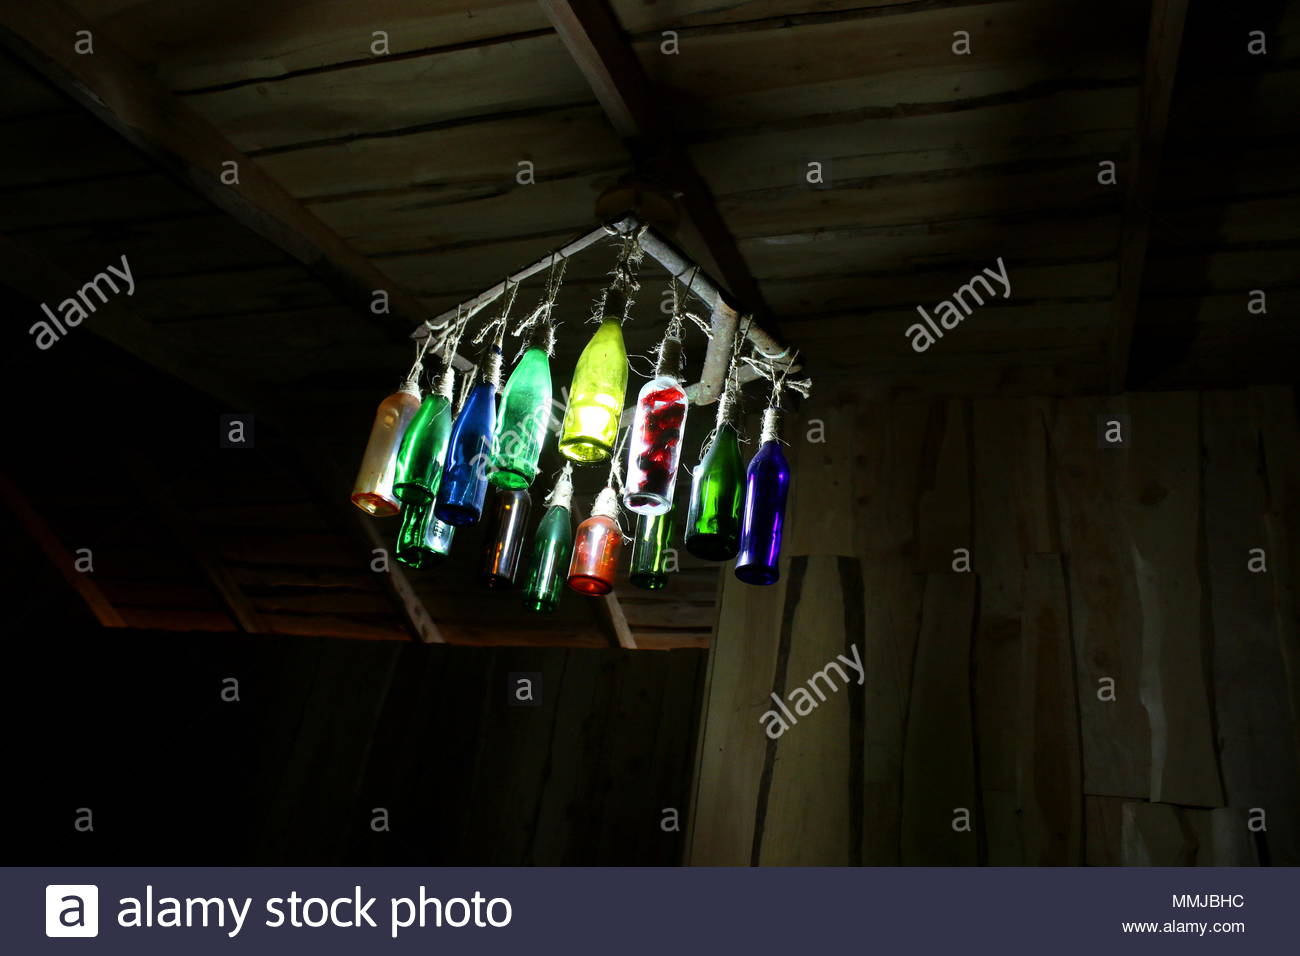 colorful glass bottles as light fixtures - Stock Image